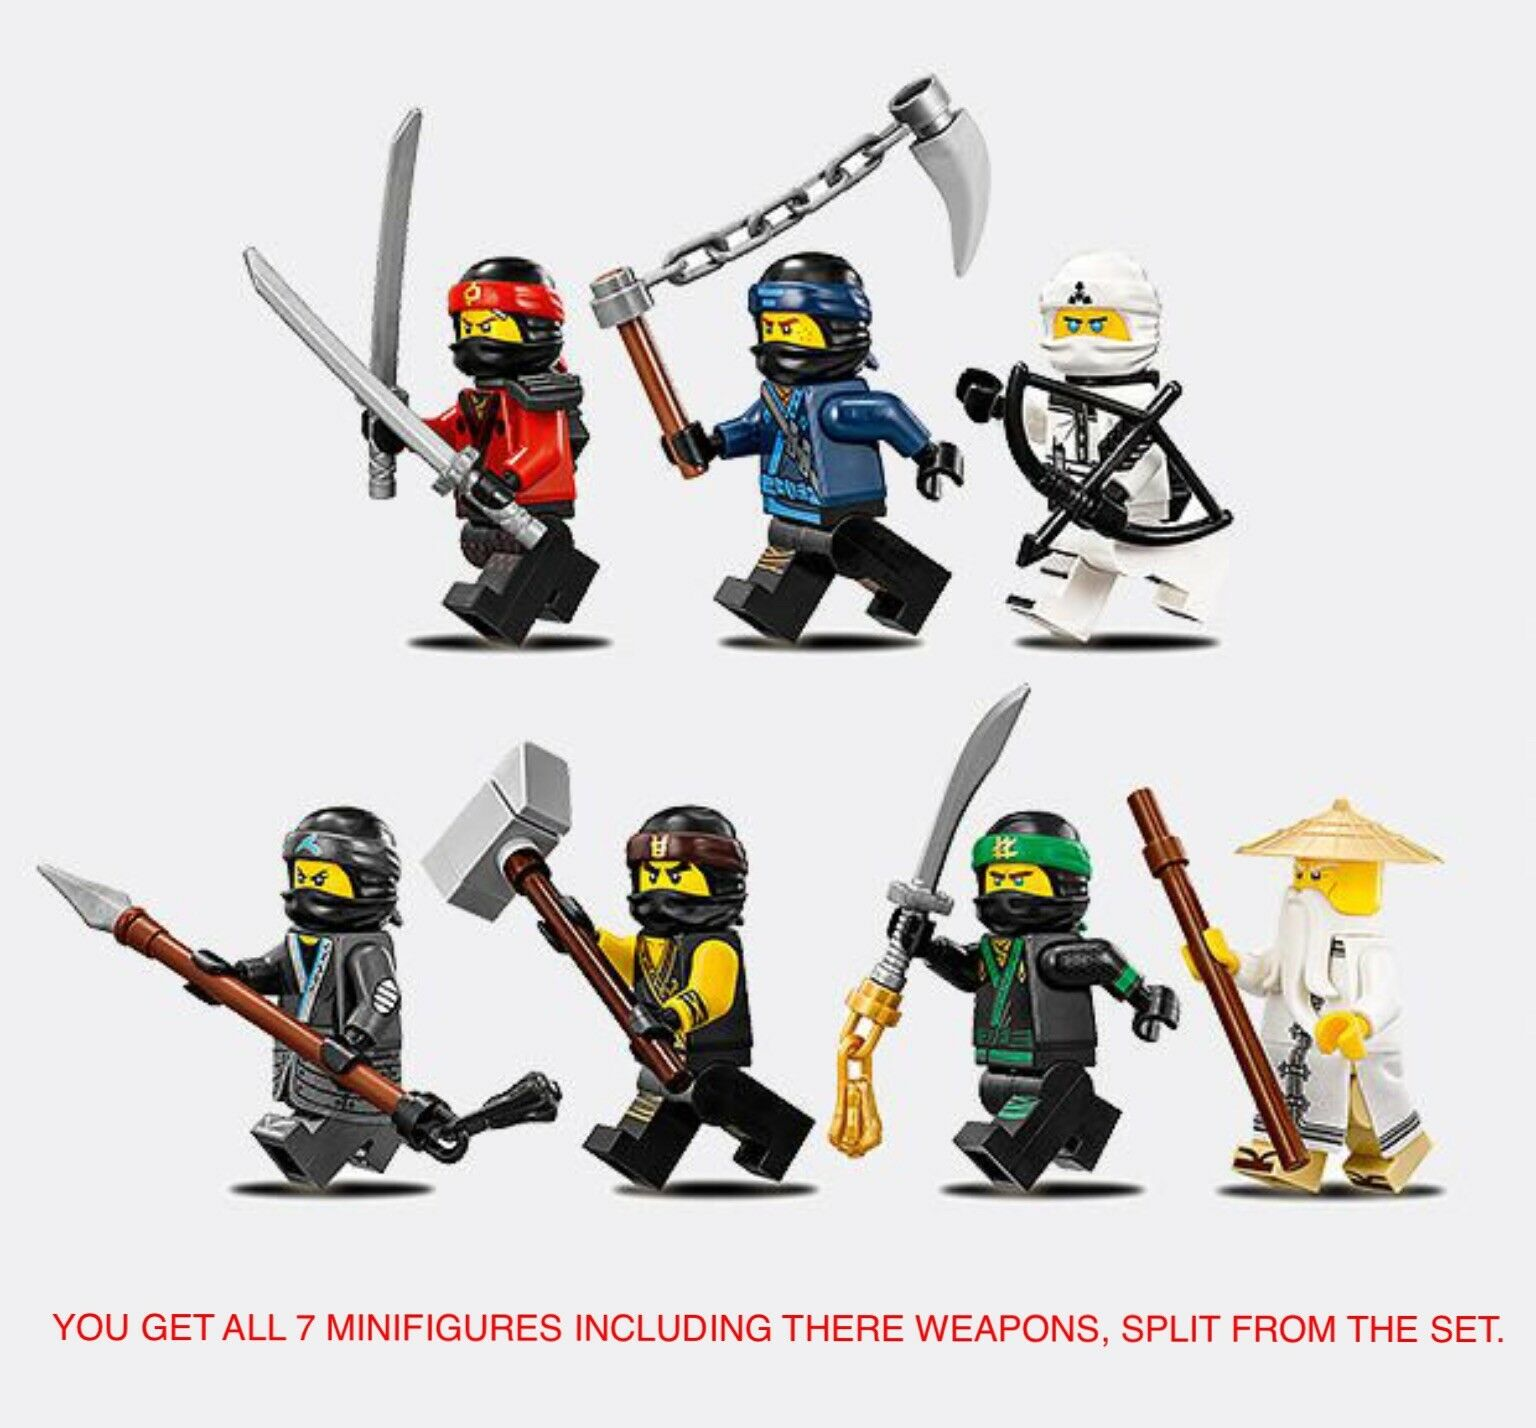 GENUINE LEGO THE NINJAGO MOVIE 70618 MINIFIGURES & WEAPONS SPLIT FROM SET. NEW